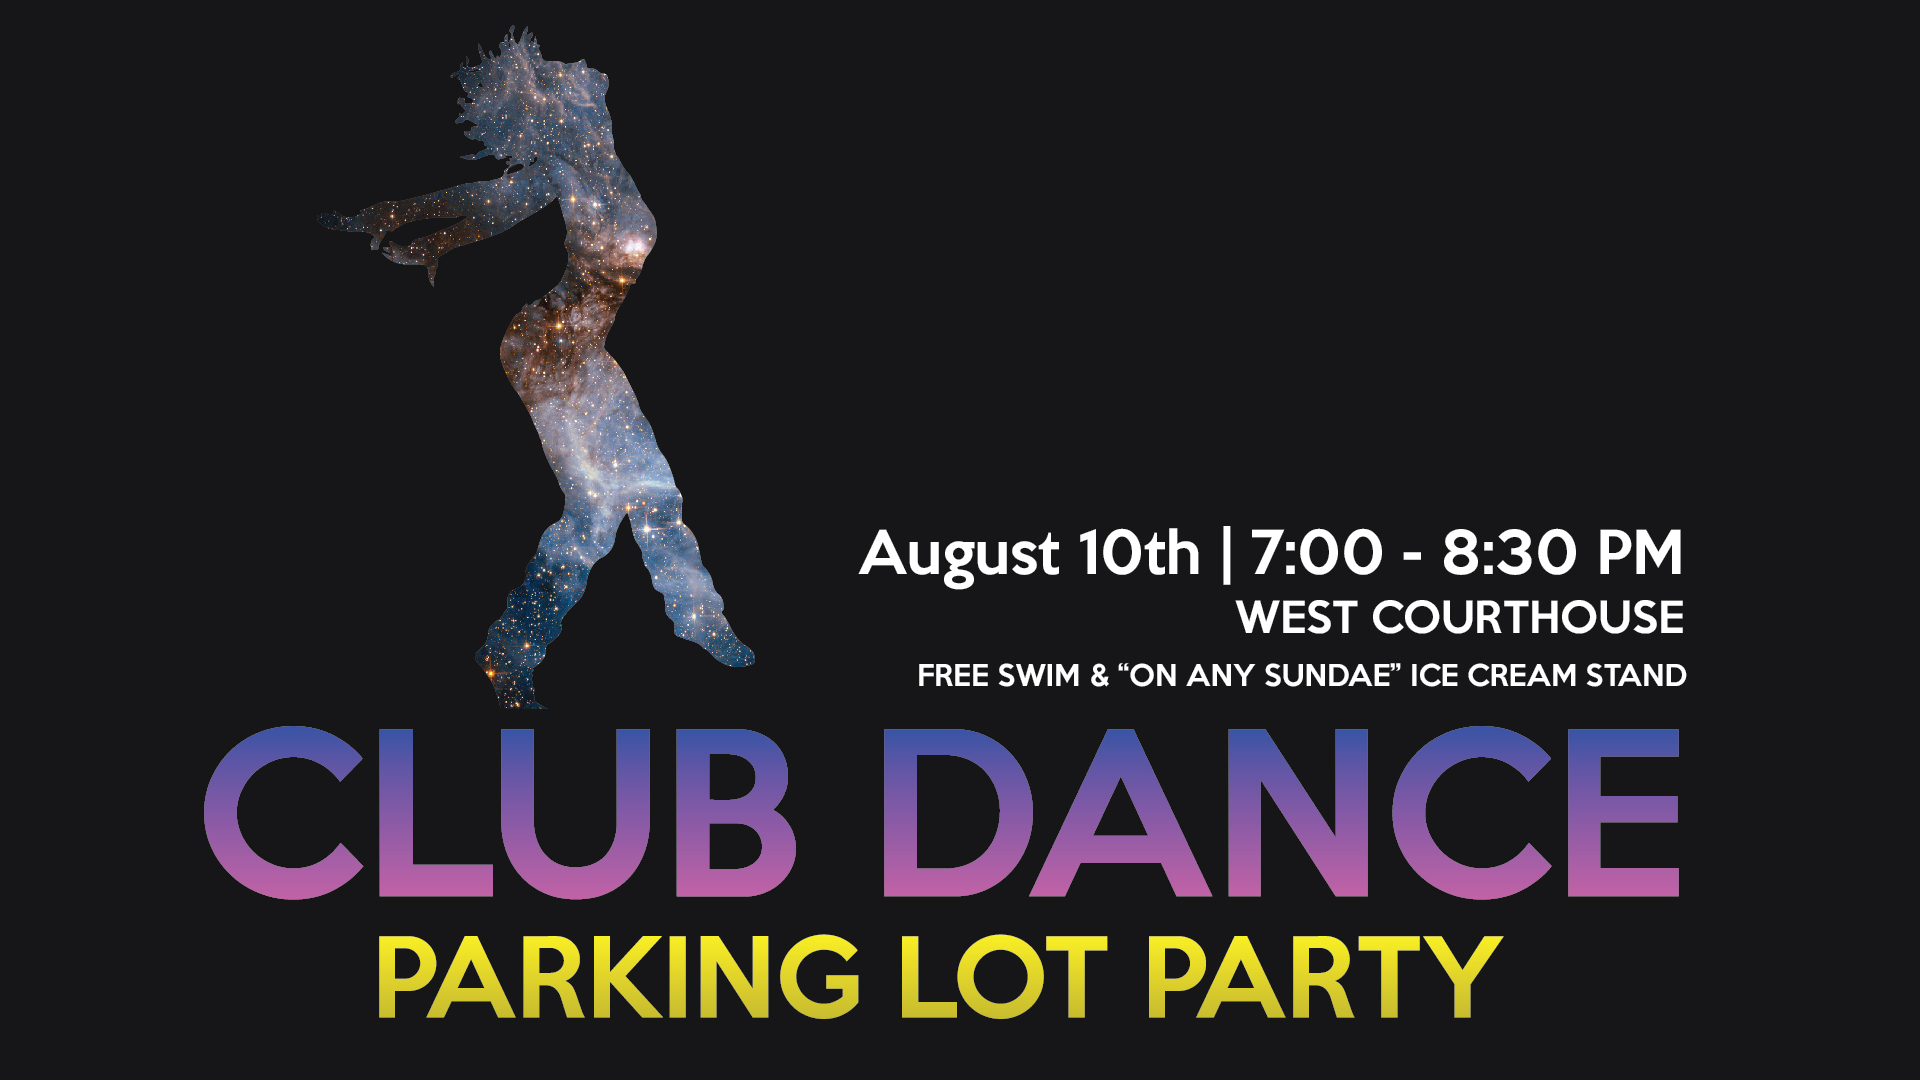 Club_Dance_Parking_Lot_Party_2018-01.jpg